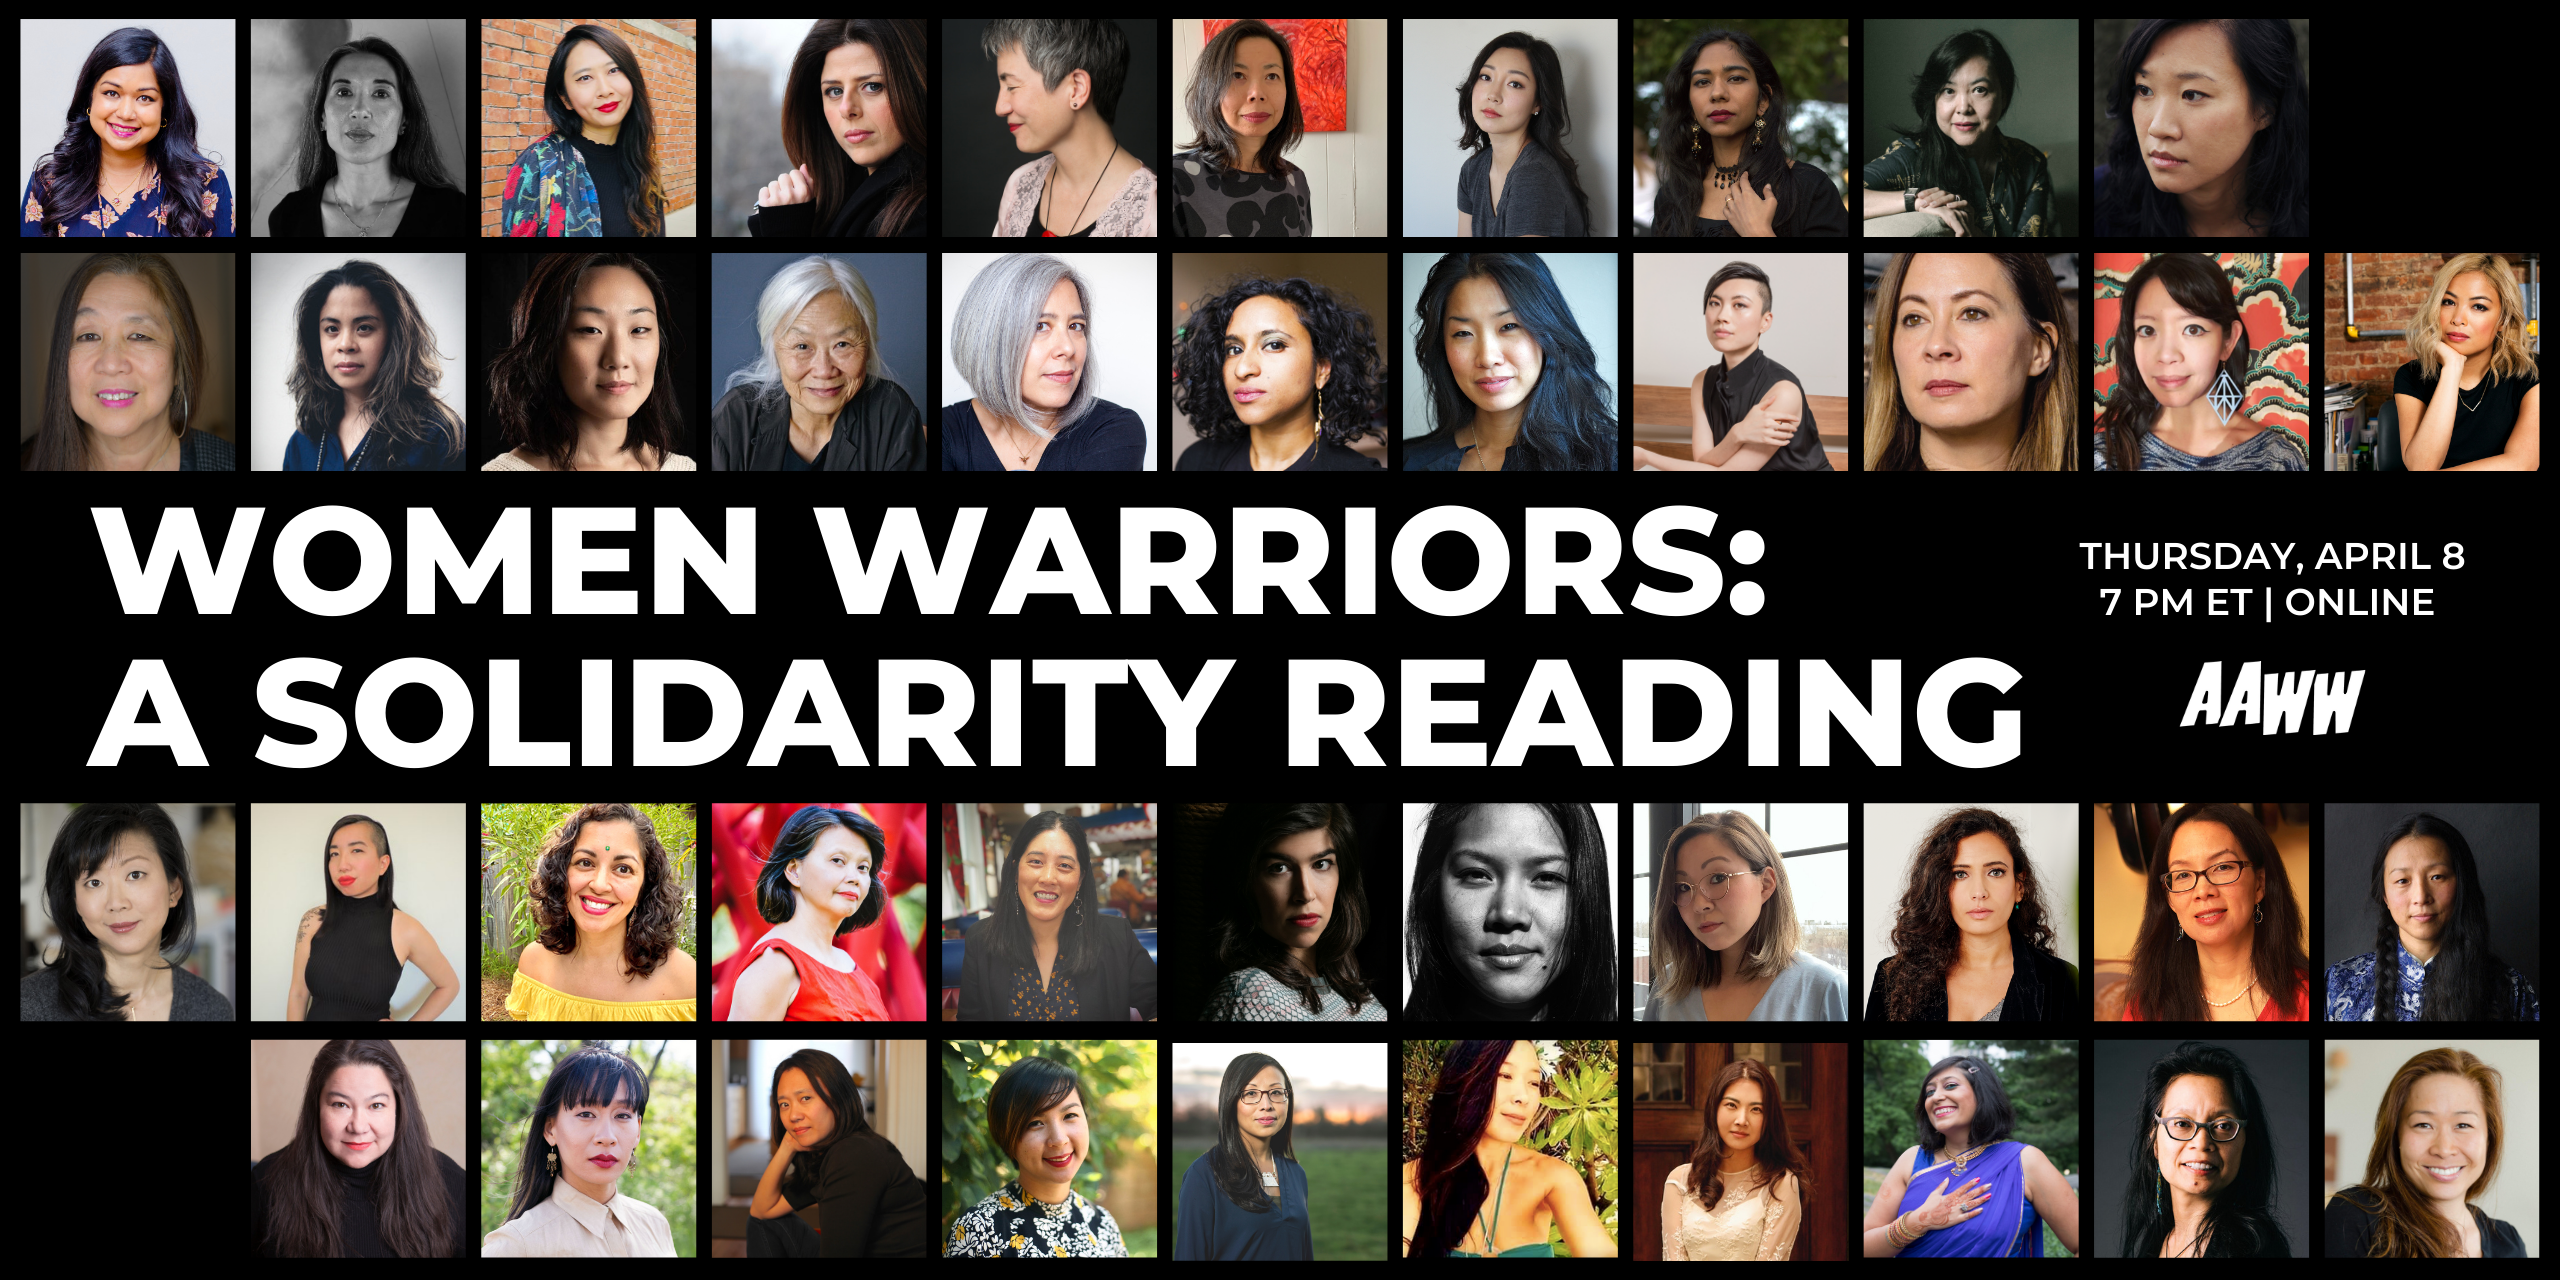 Women Warriors: A Solidarity Reading